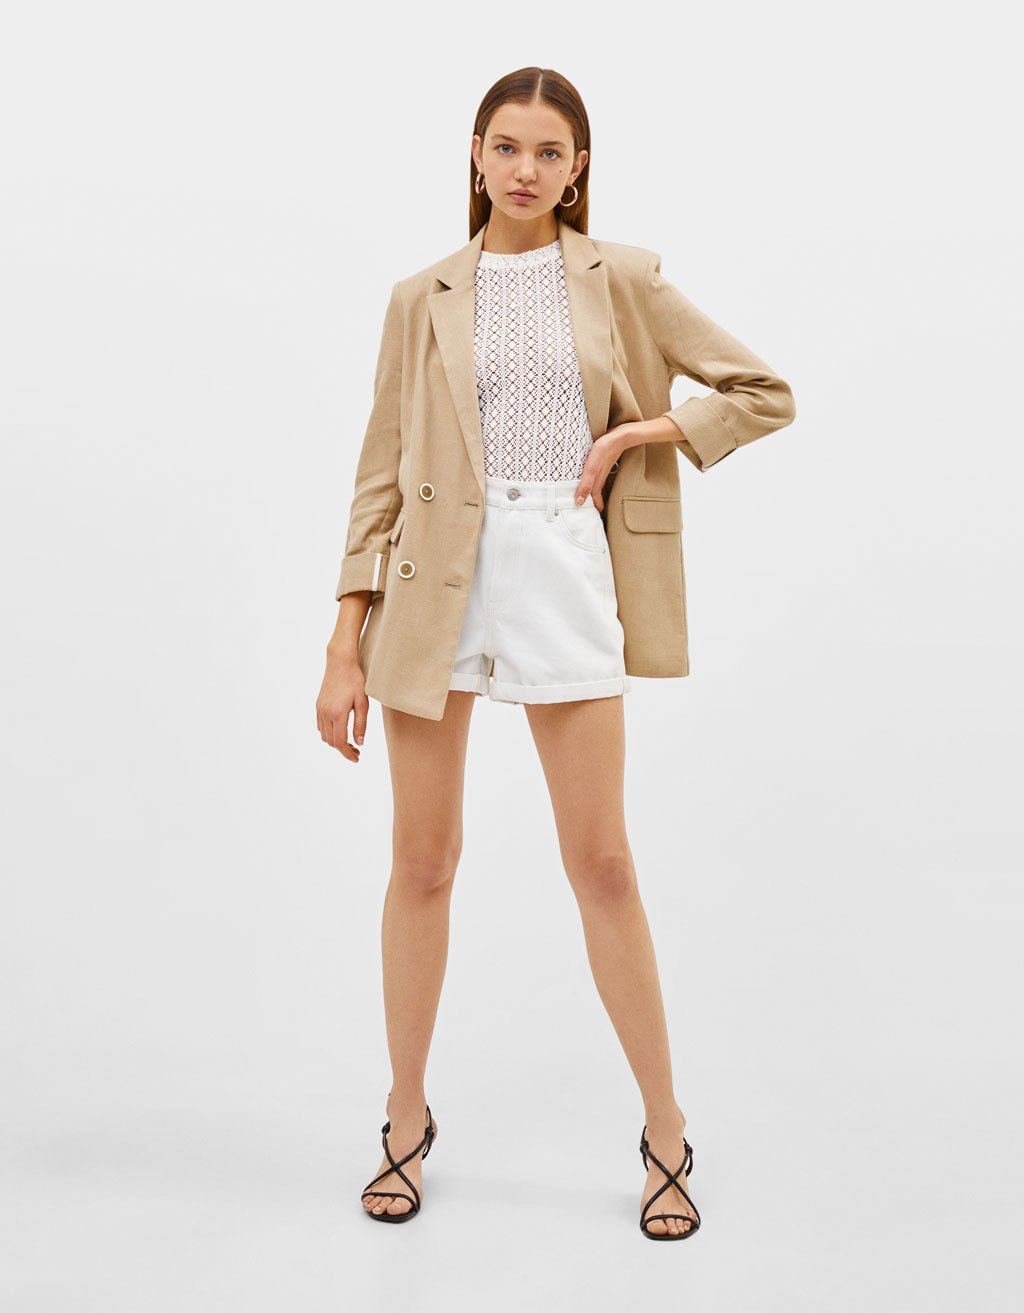 Rustic blazer with rolled-up sleeves